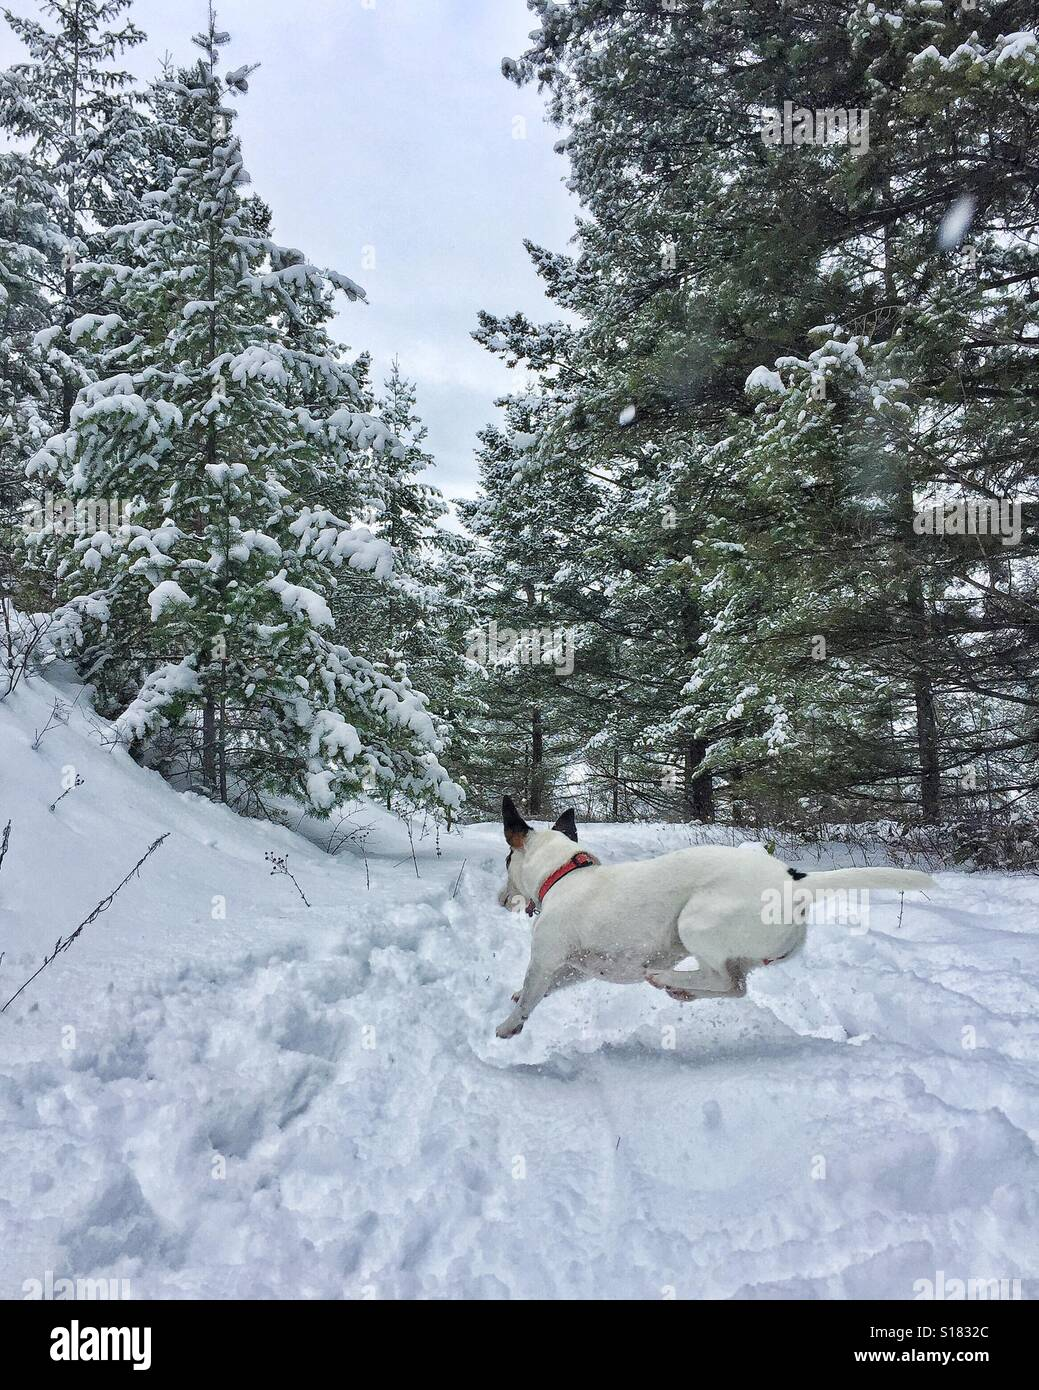 Small dog in motion, leaping across a snow covered trail in the forest. - Stock Image